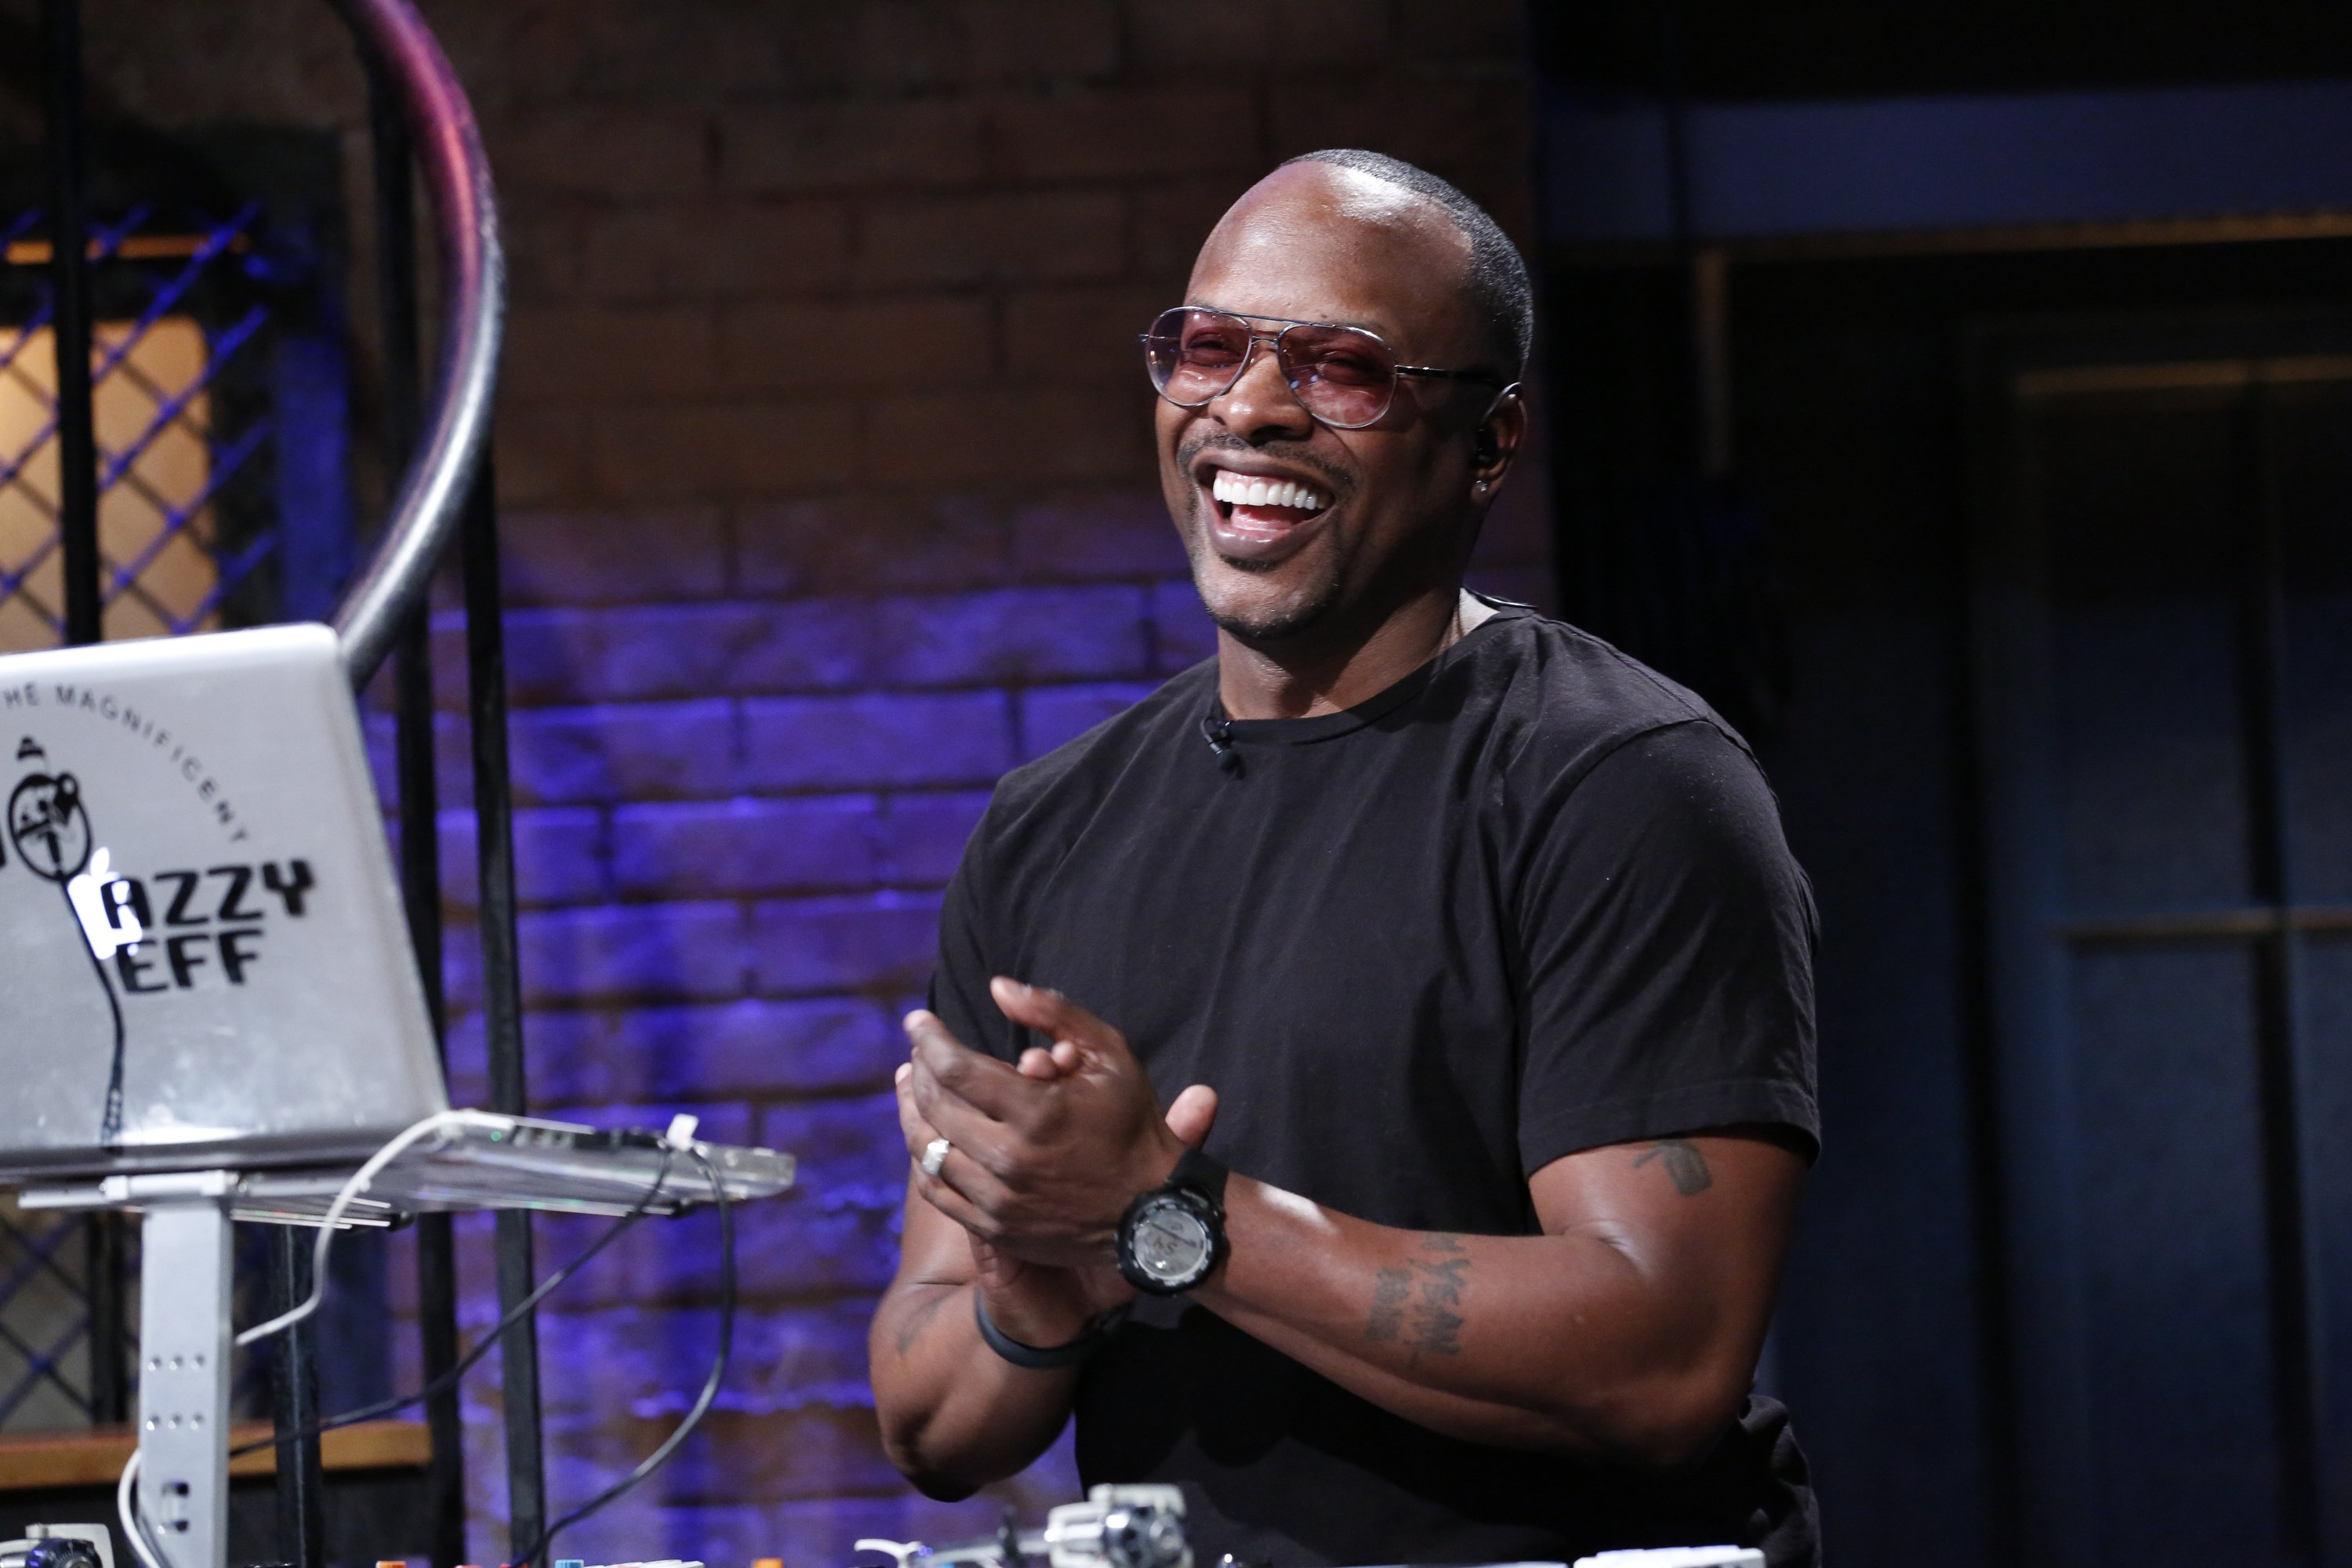 LATE NIGHT WITH JIMMY FALLON -- Episode 809 -- Pictured: DJ Jazzy Jeff on April 1, 2013 | Photo: GettyImages